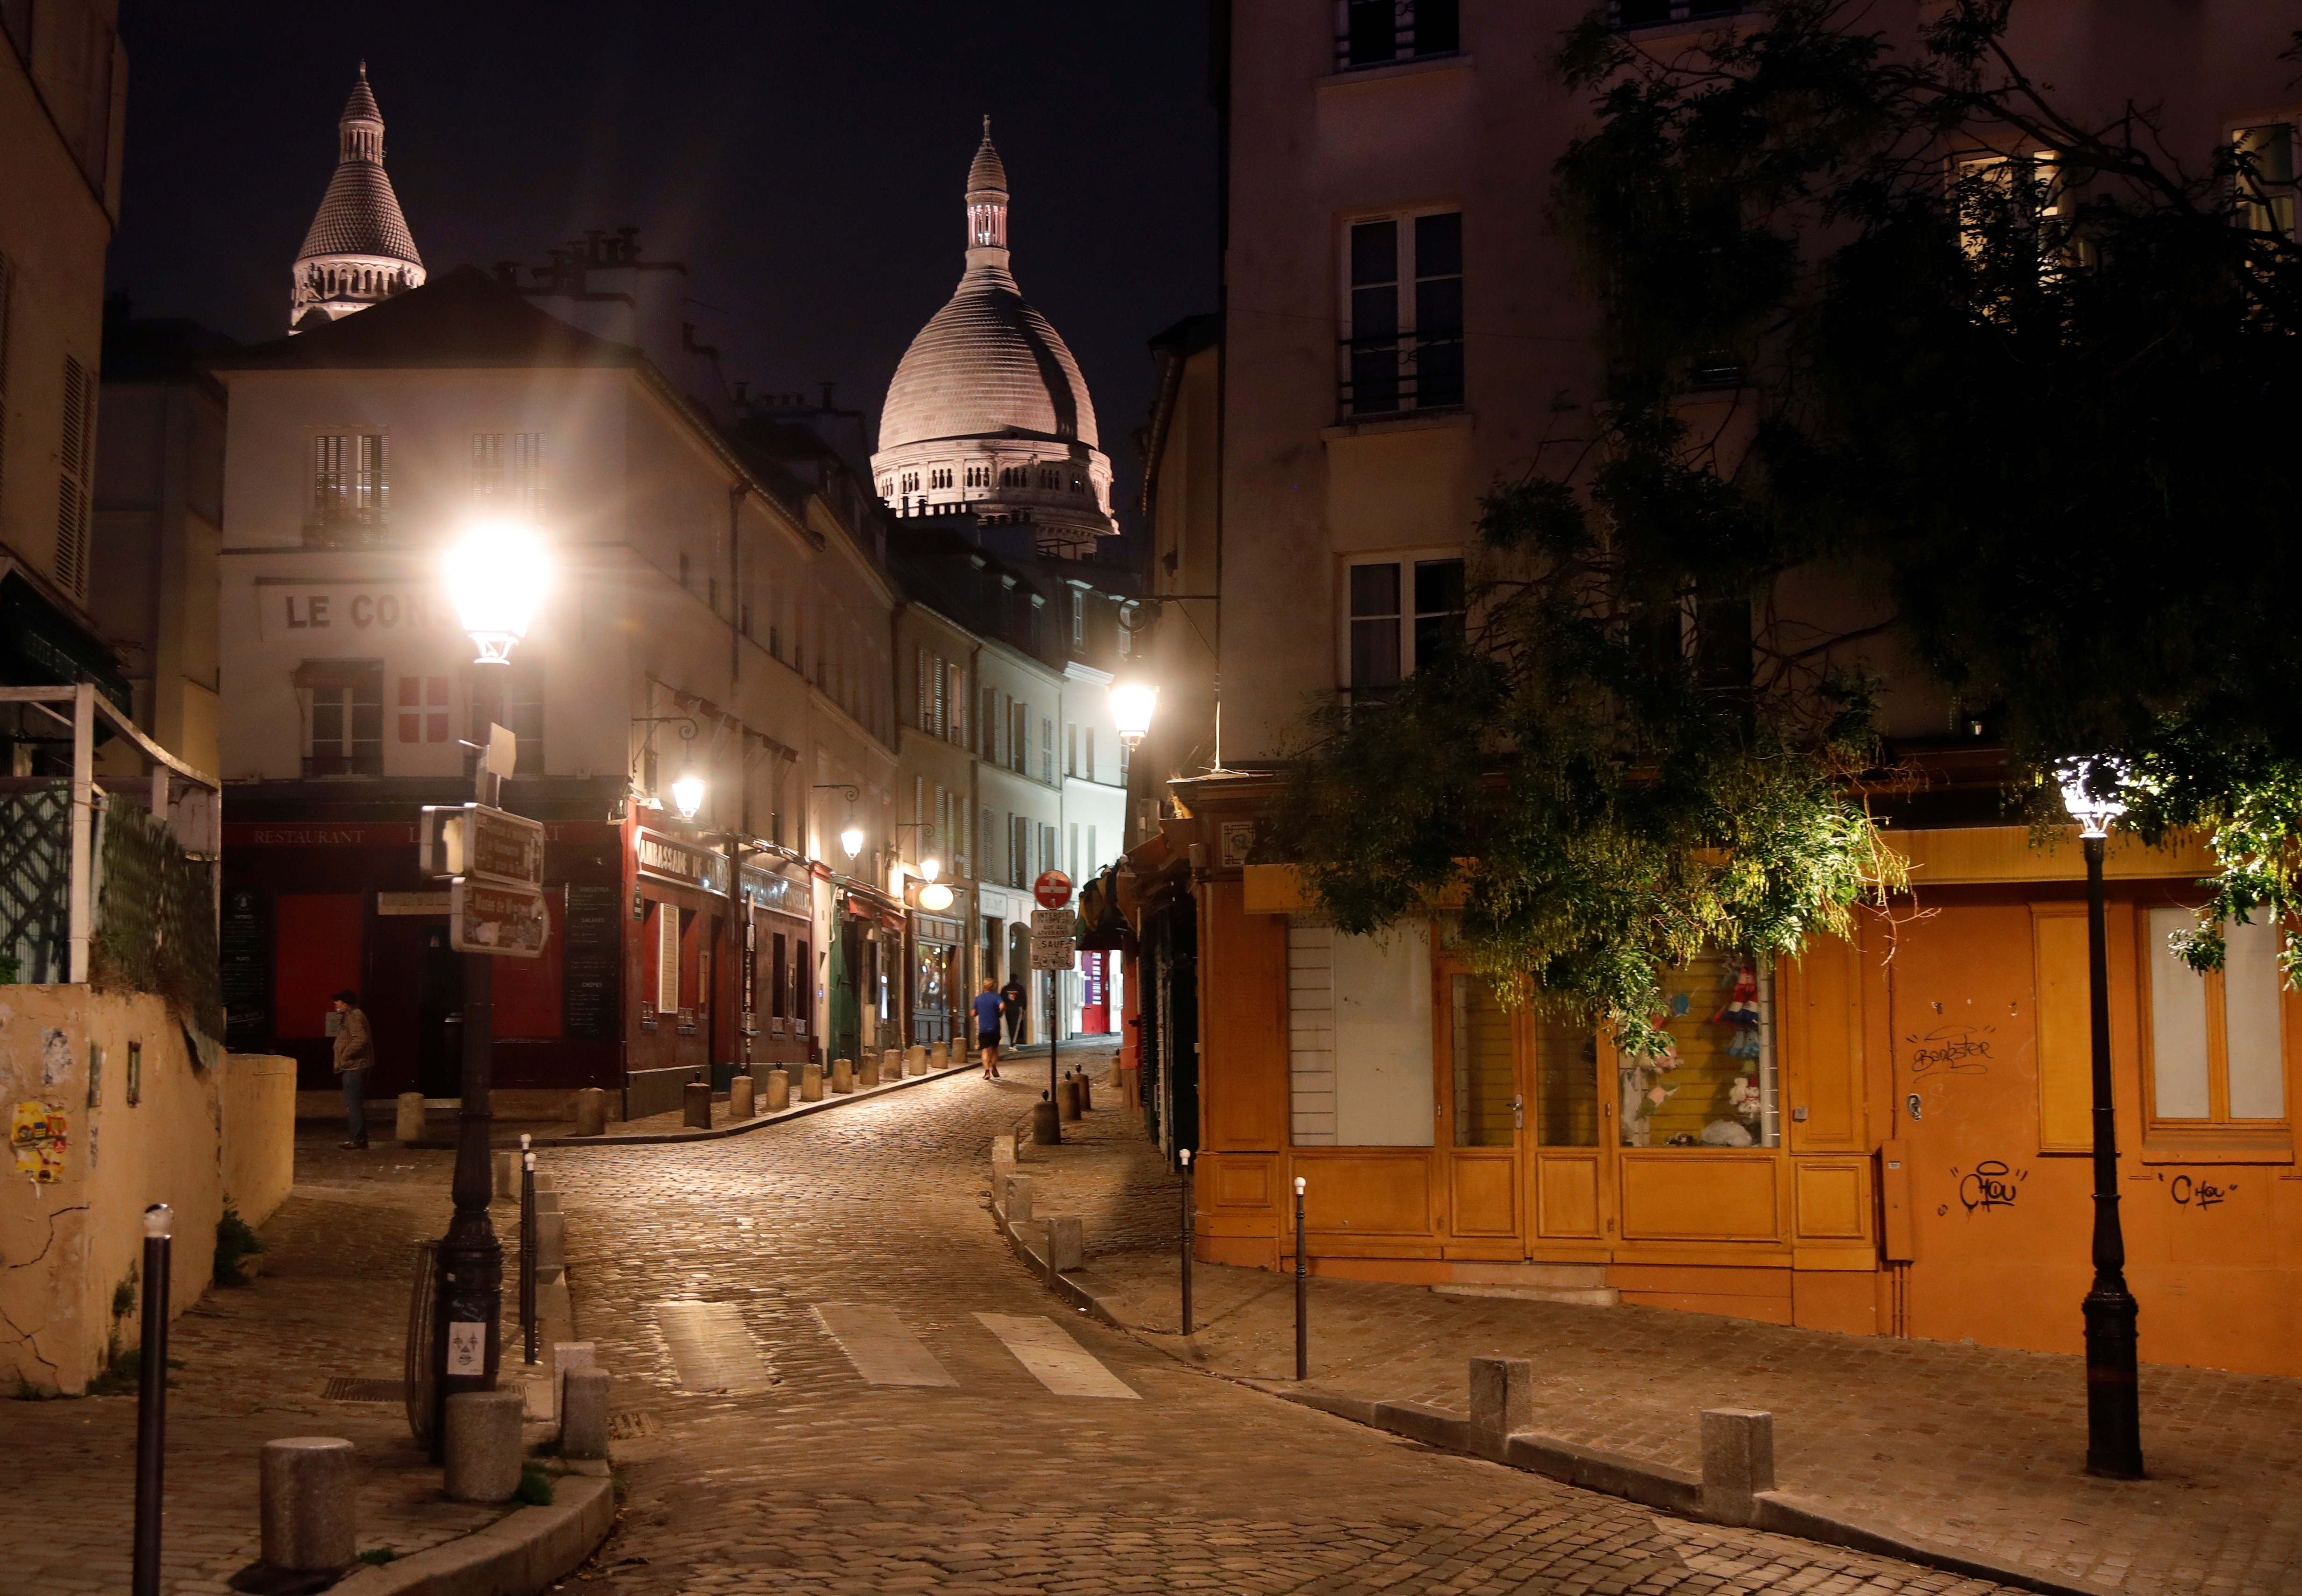 A street is seen in Montmartre few minutes before the nightly curfew due to restrictions against the spread of the coronavirus disease (COVID-19) in Paris, France, October 22, 2020. REUTERS/Charles Platiau - RC2WNJ9GDCPI